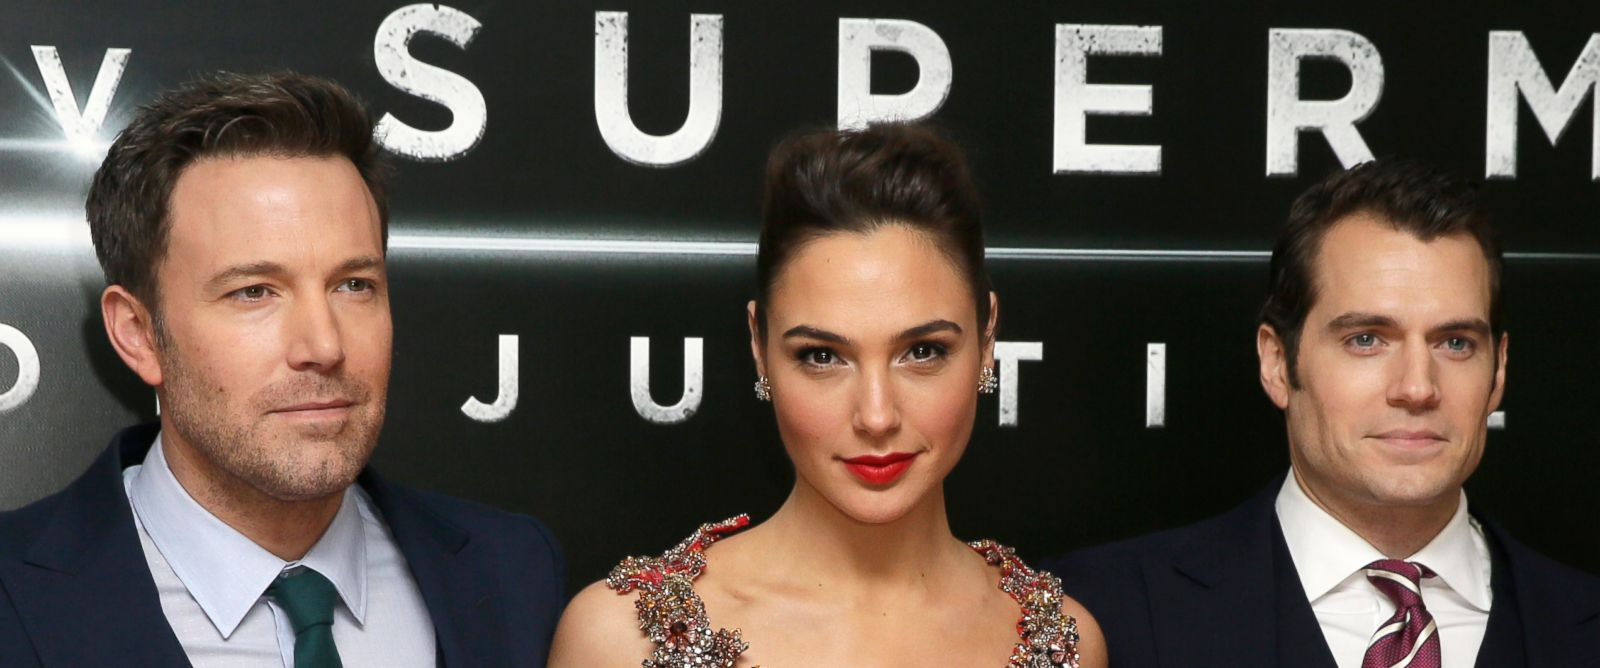 PHOTO: Ben Affleck, Gal Gadot and Henry Cavill pose for photographers upon arrival at the premiere of the film Batman V Superman in London, March 22, 2016.